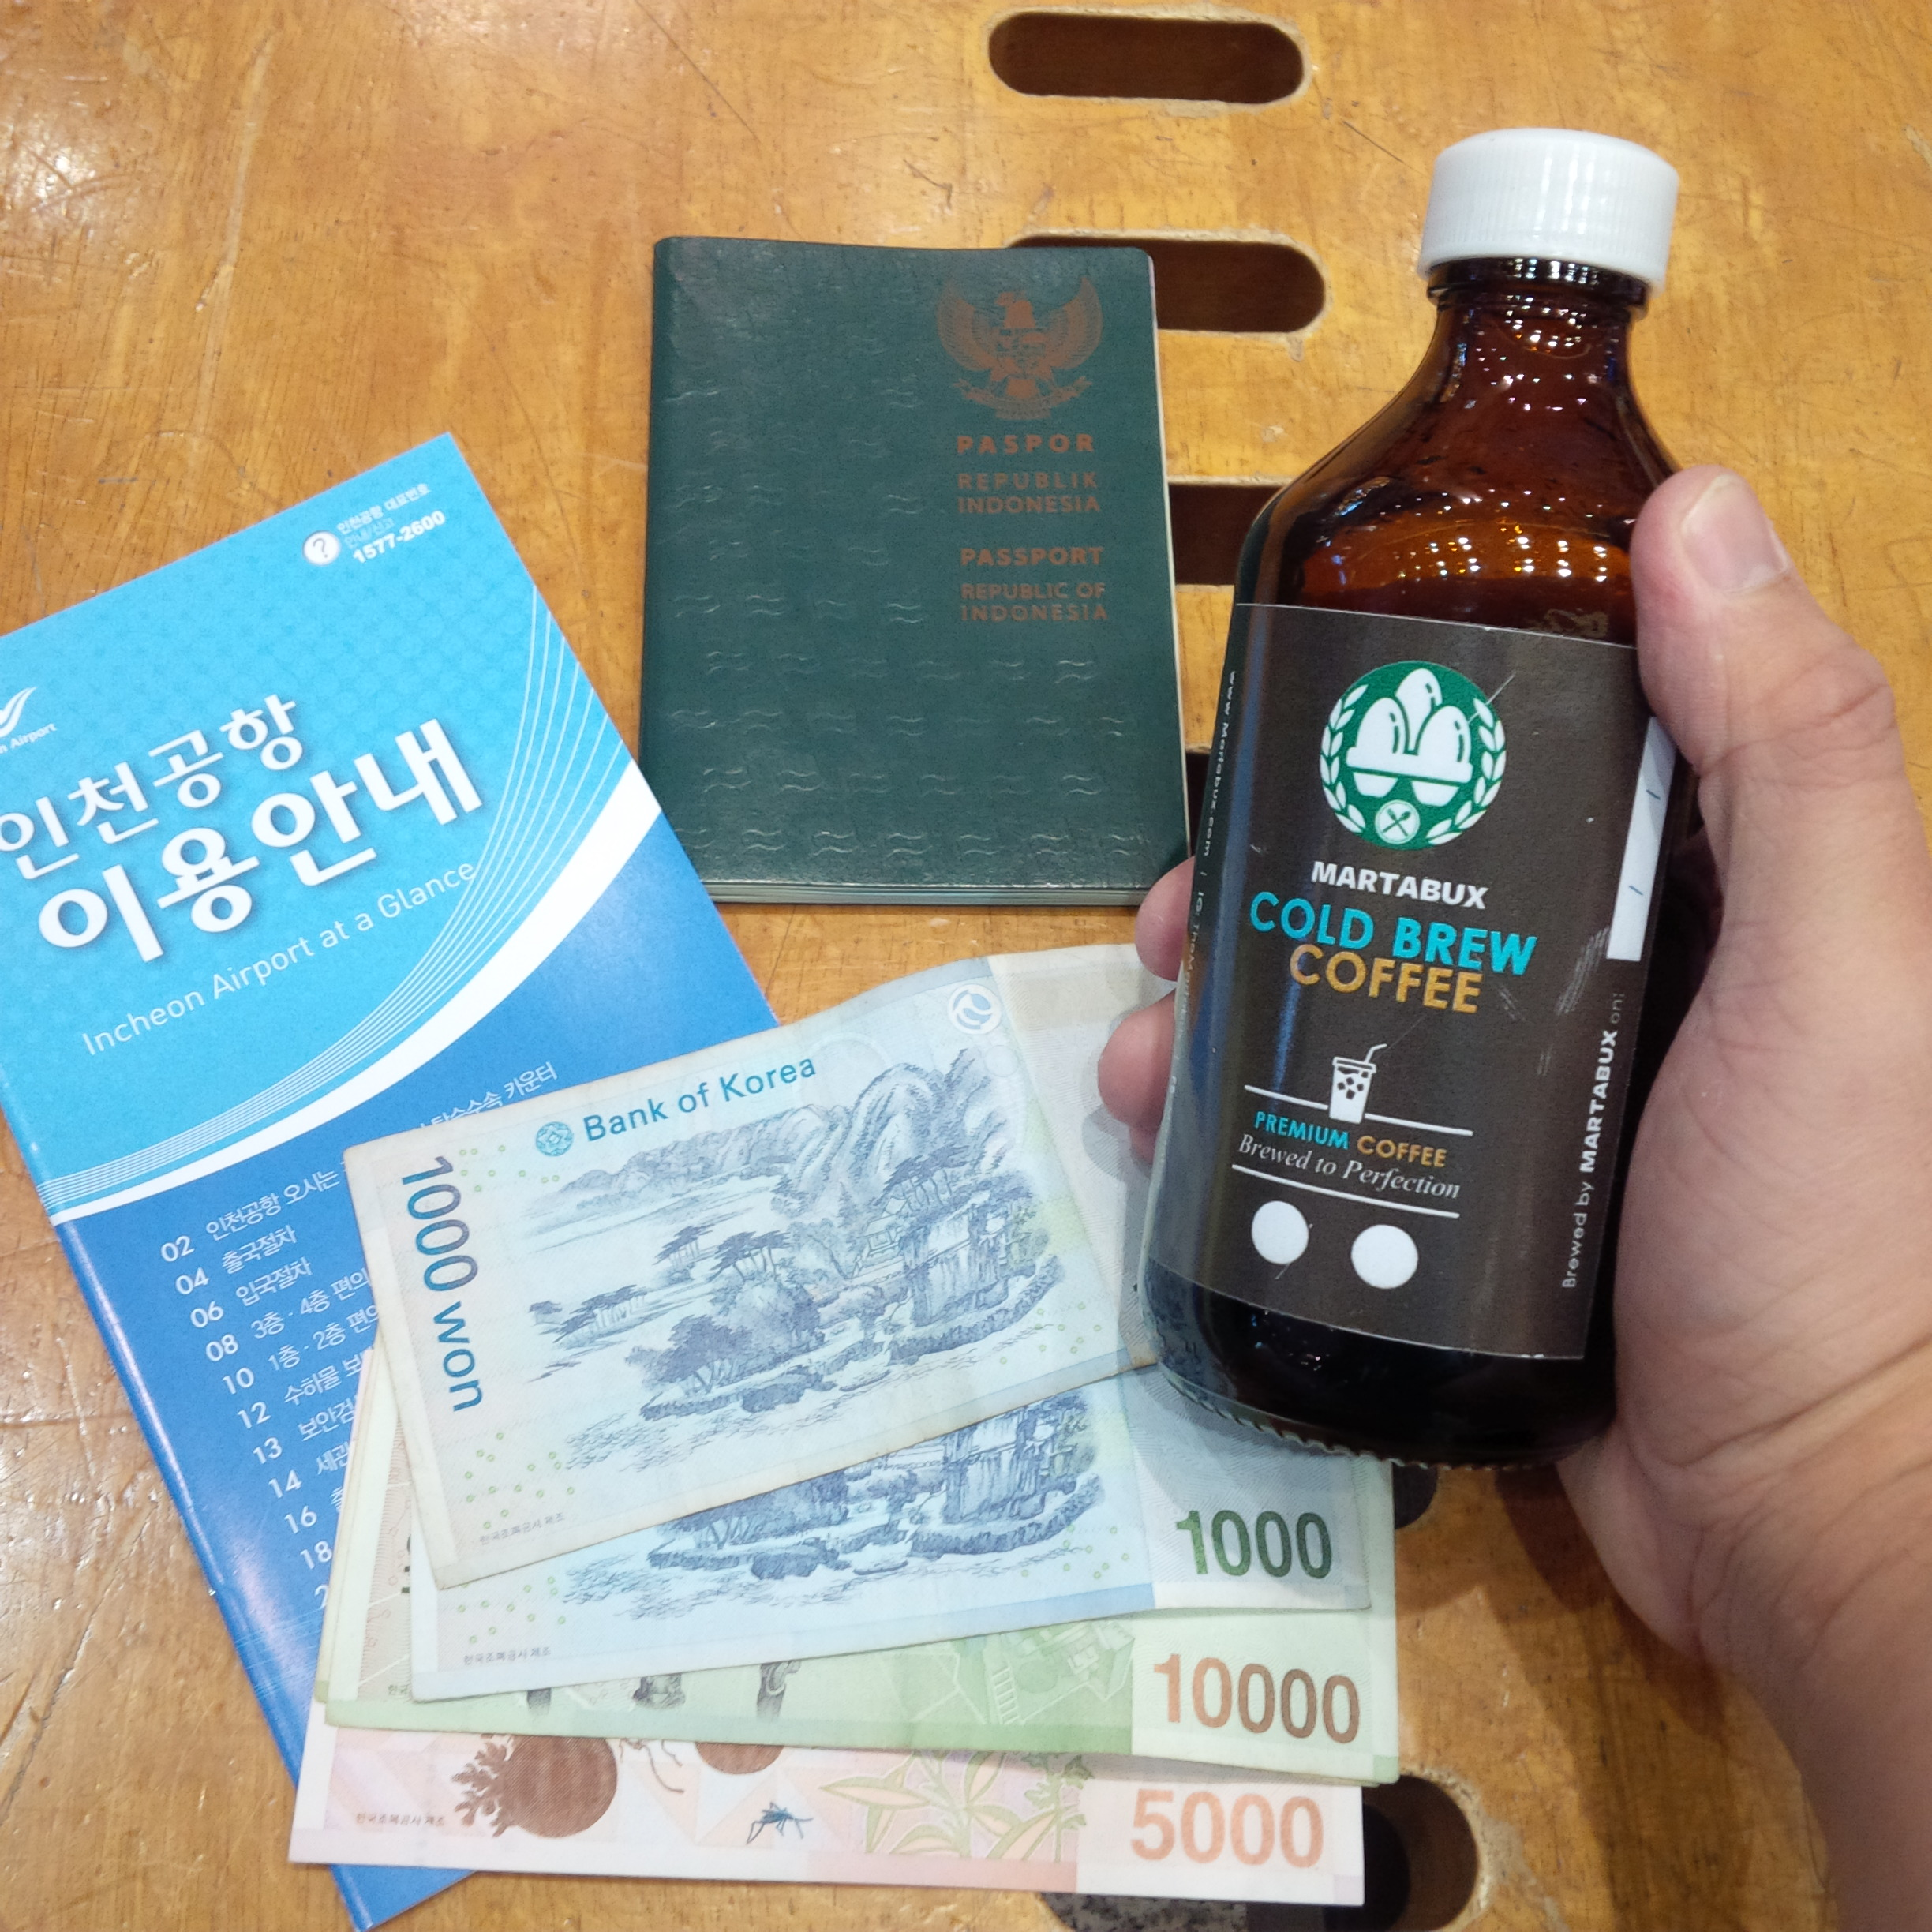 Cold Brew Coffee in Korea